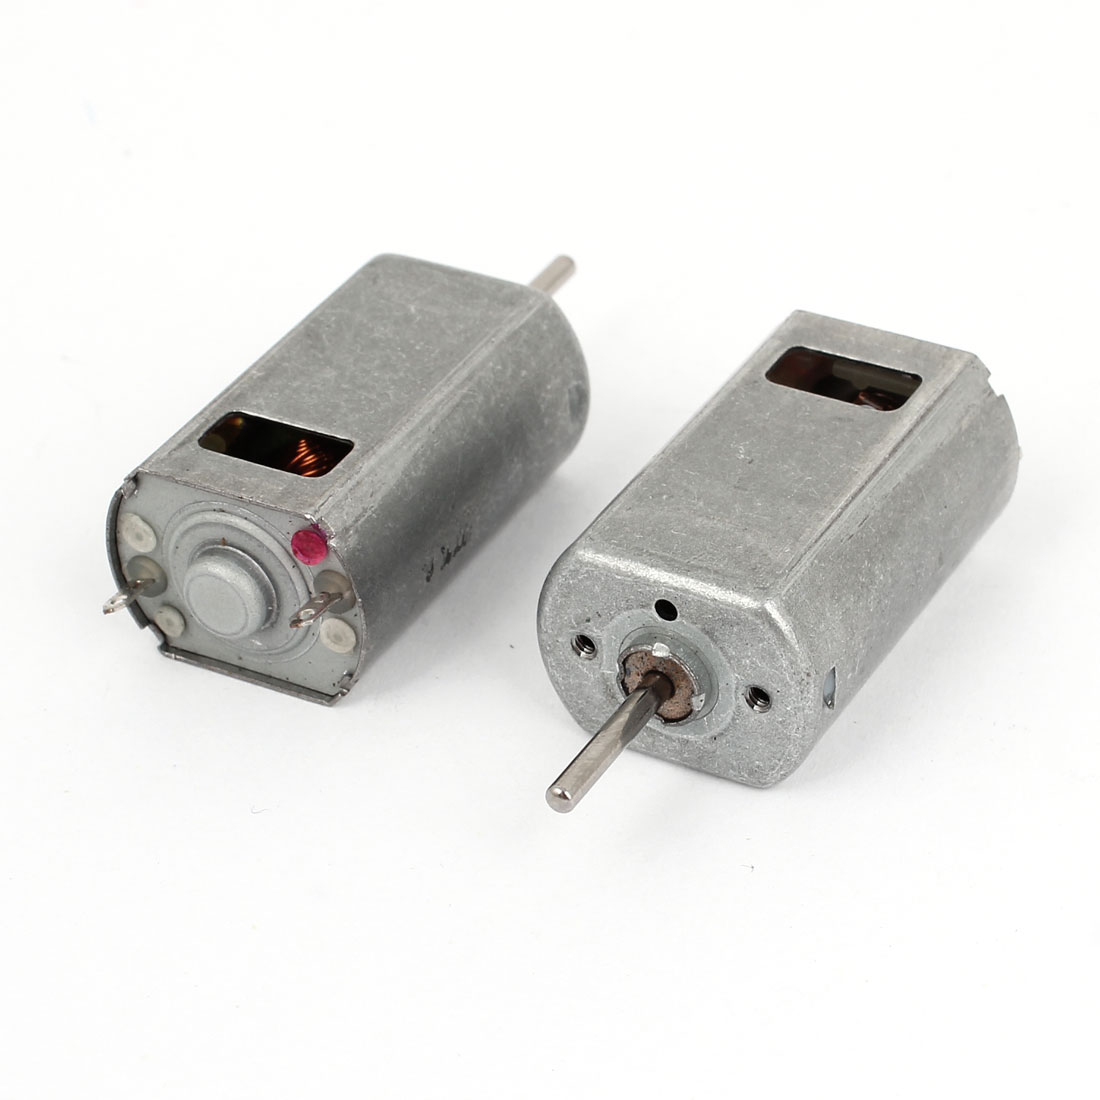 2pcs DC1.5-12V 22400r/min Output High Torque Magnet Vibration Motor for Massager